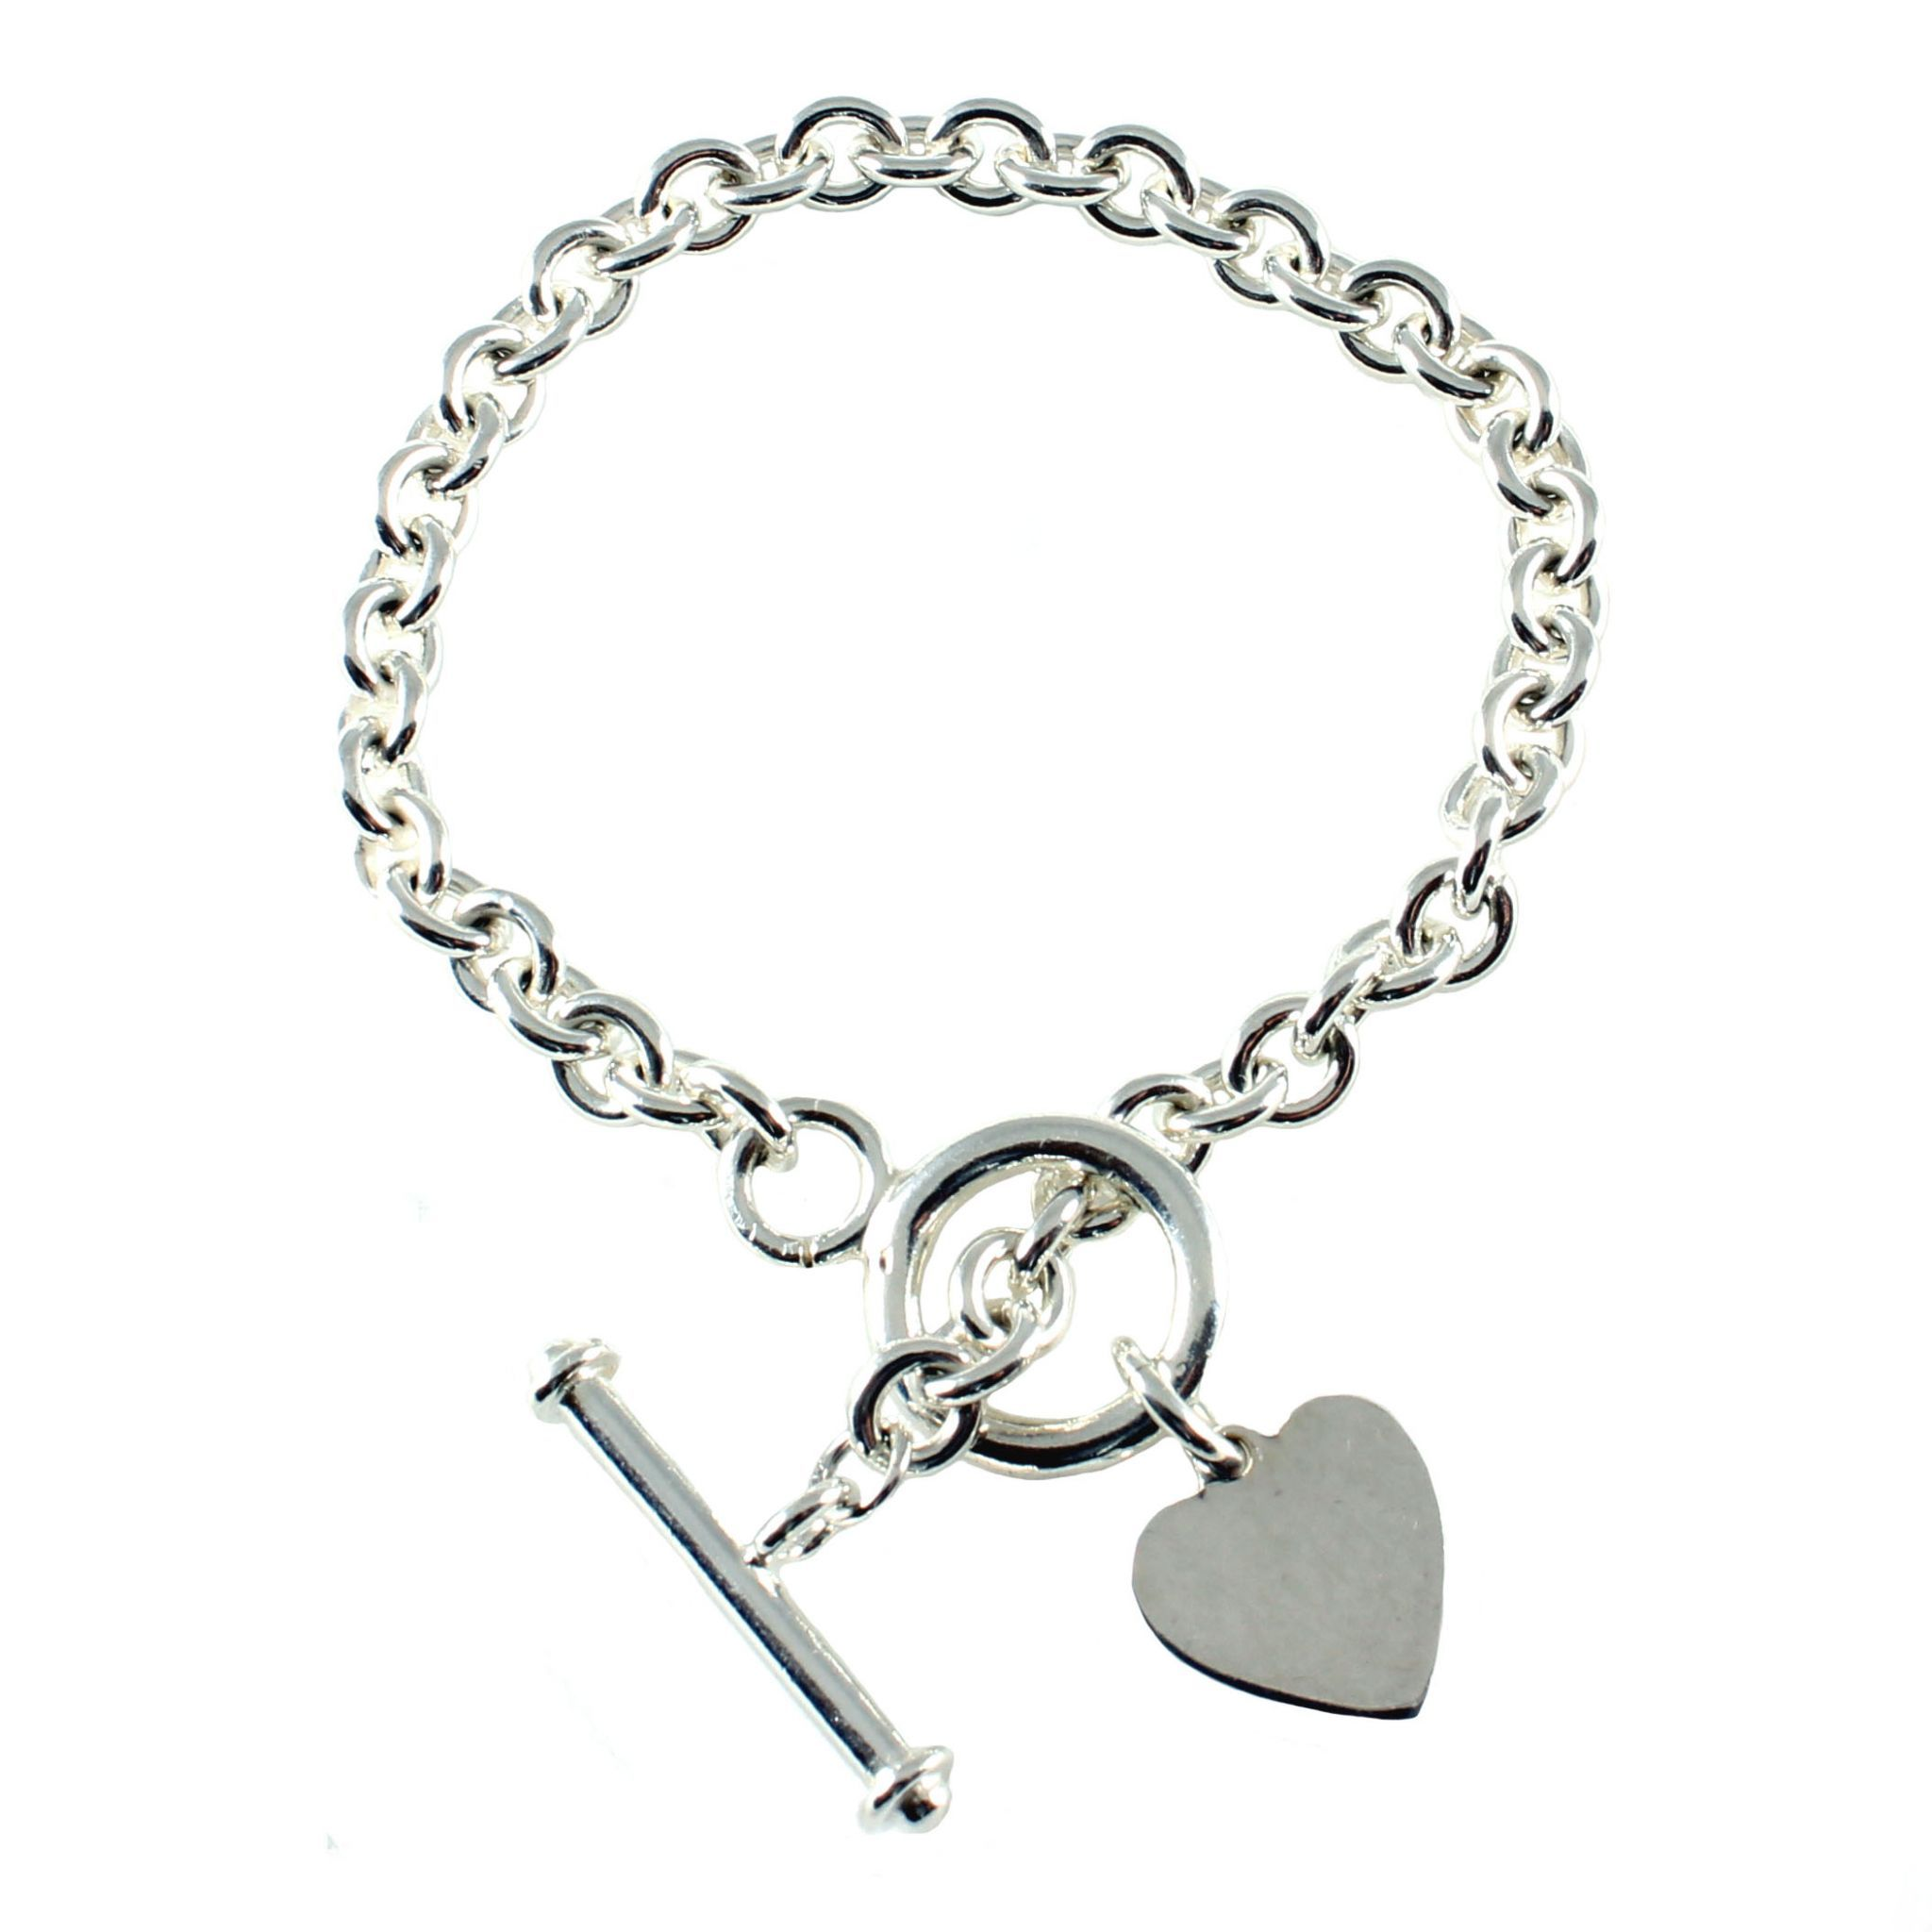 patron bracelet the bangles saint bangle company sterling silver catholic charm